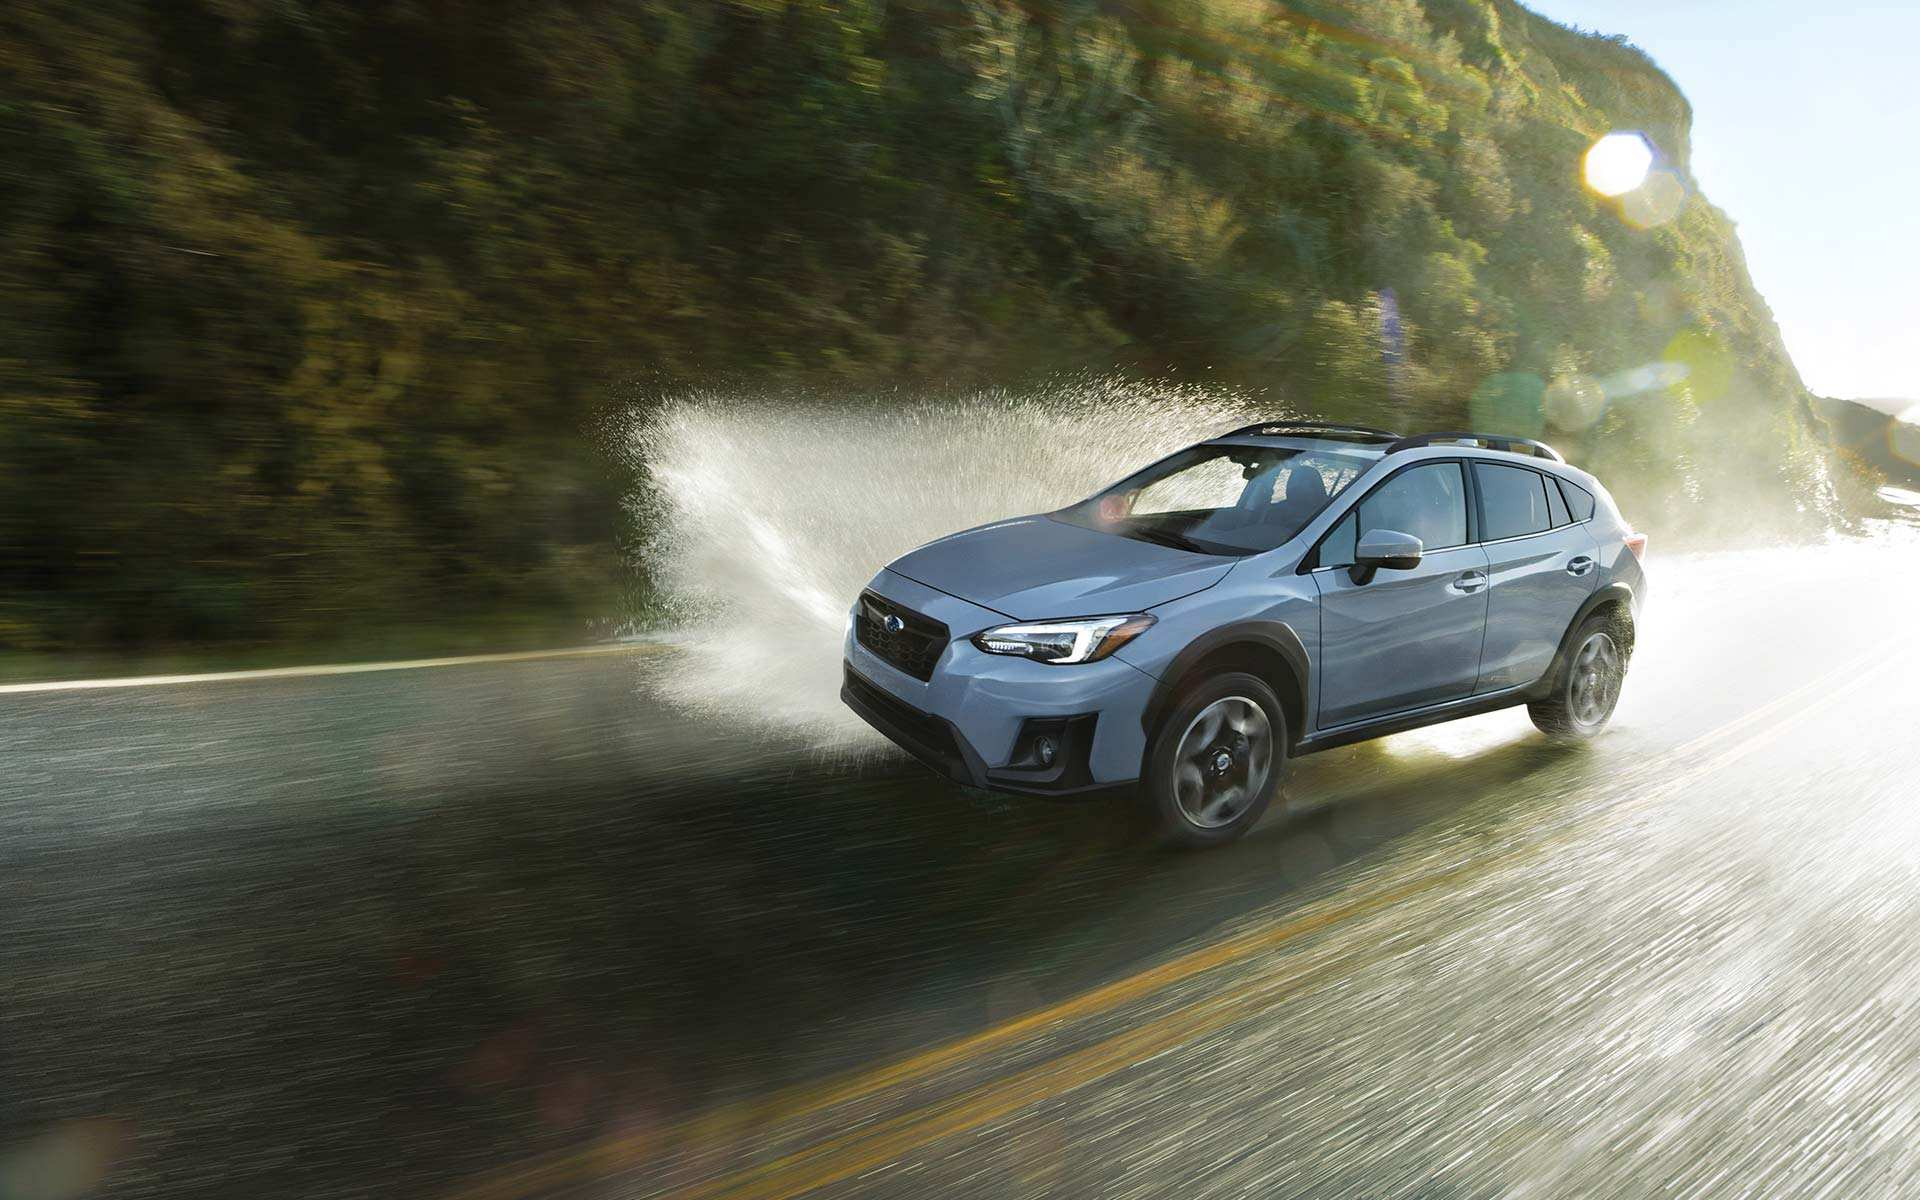 81 The New 2019 Subaru Crosstrek Khaki New Concept Prices for New 2019 Subaru Crosstrek Khaki New Concept